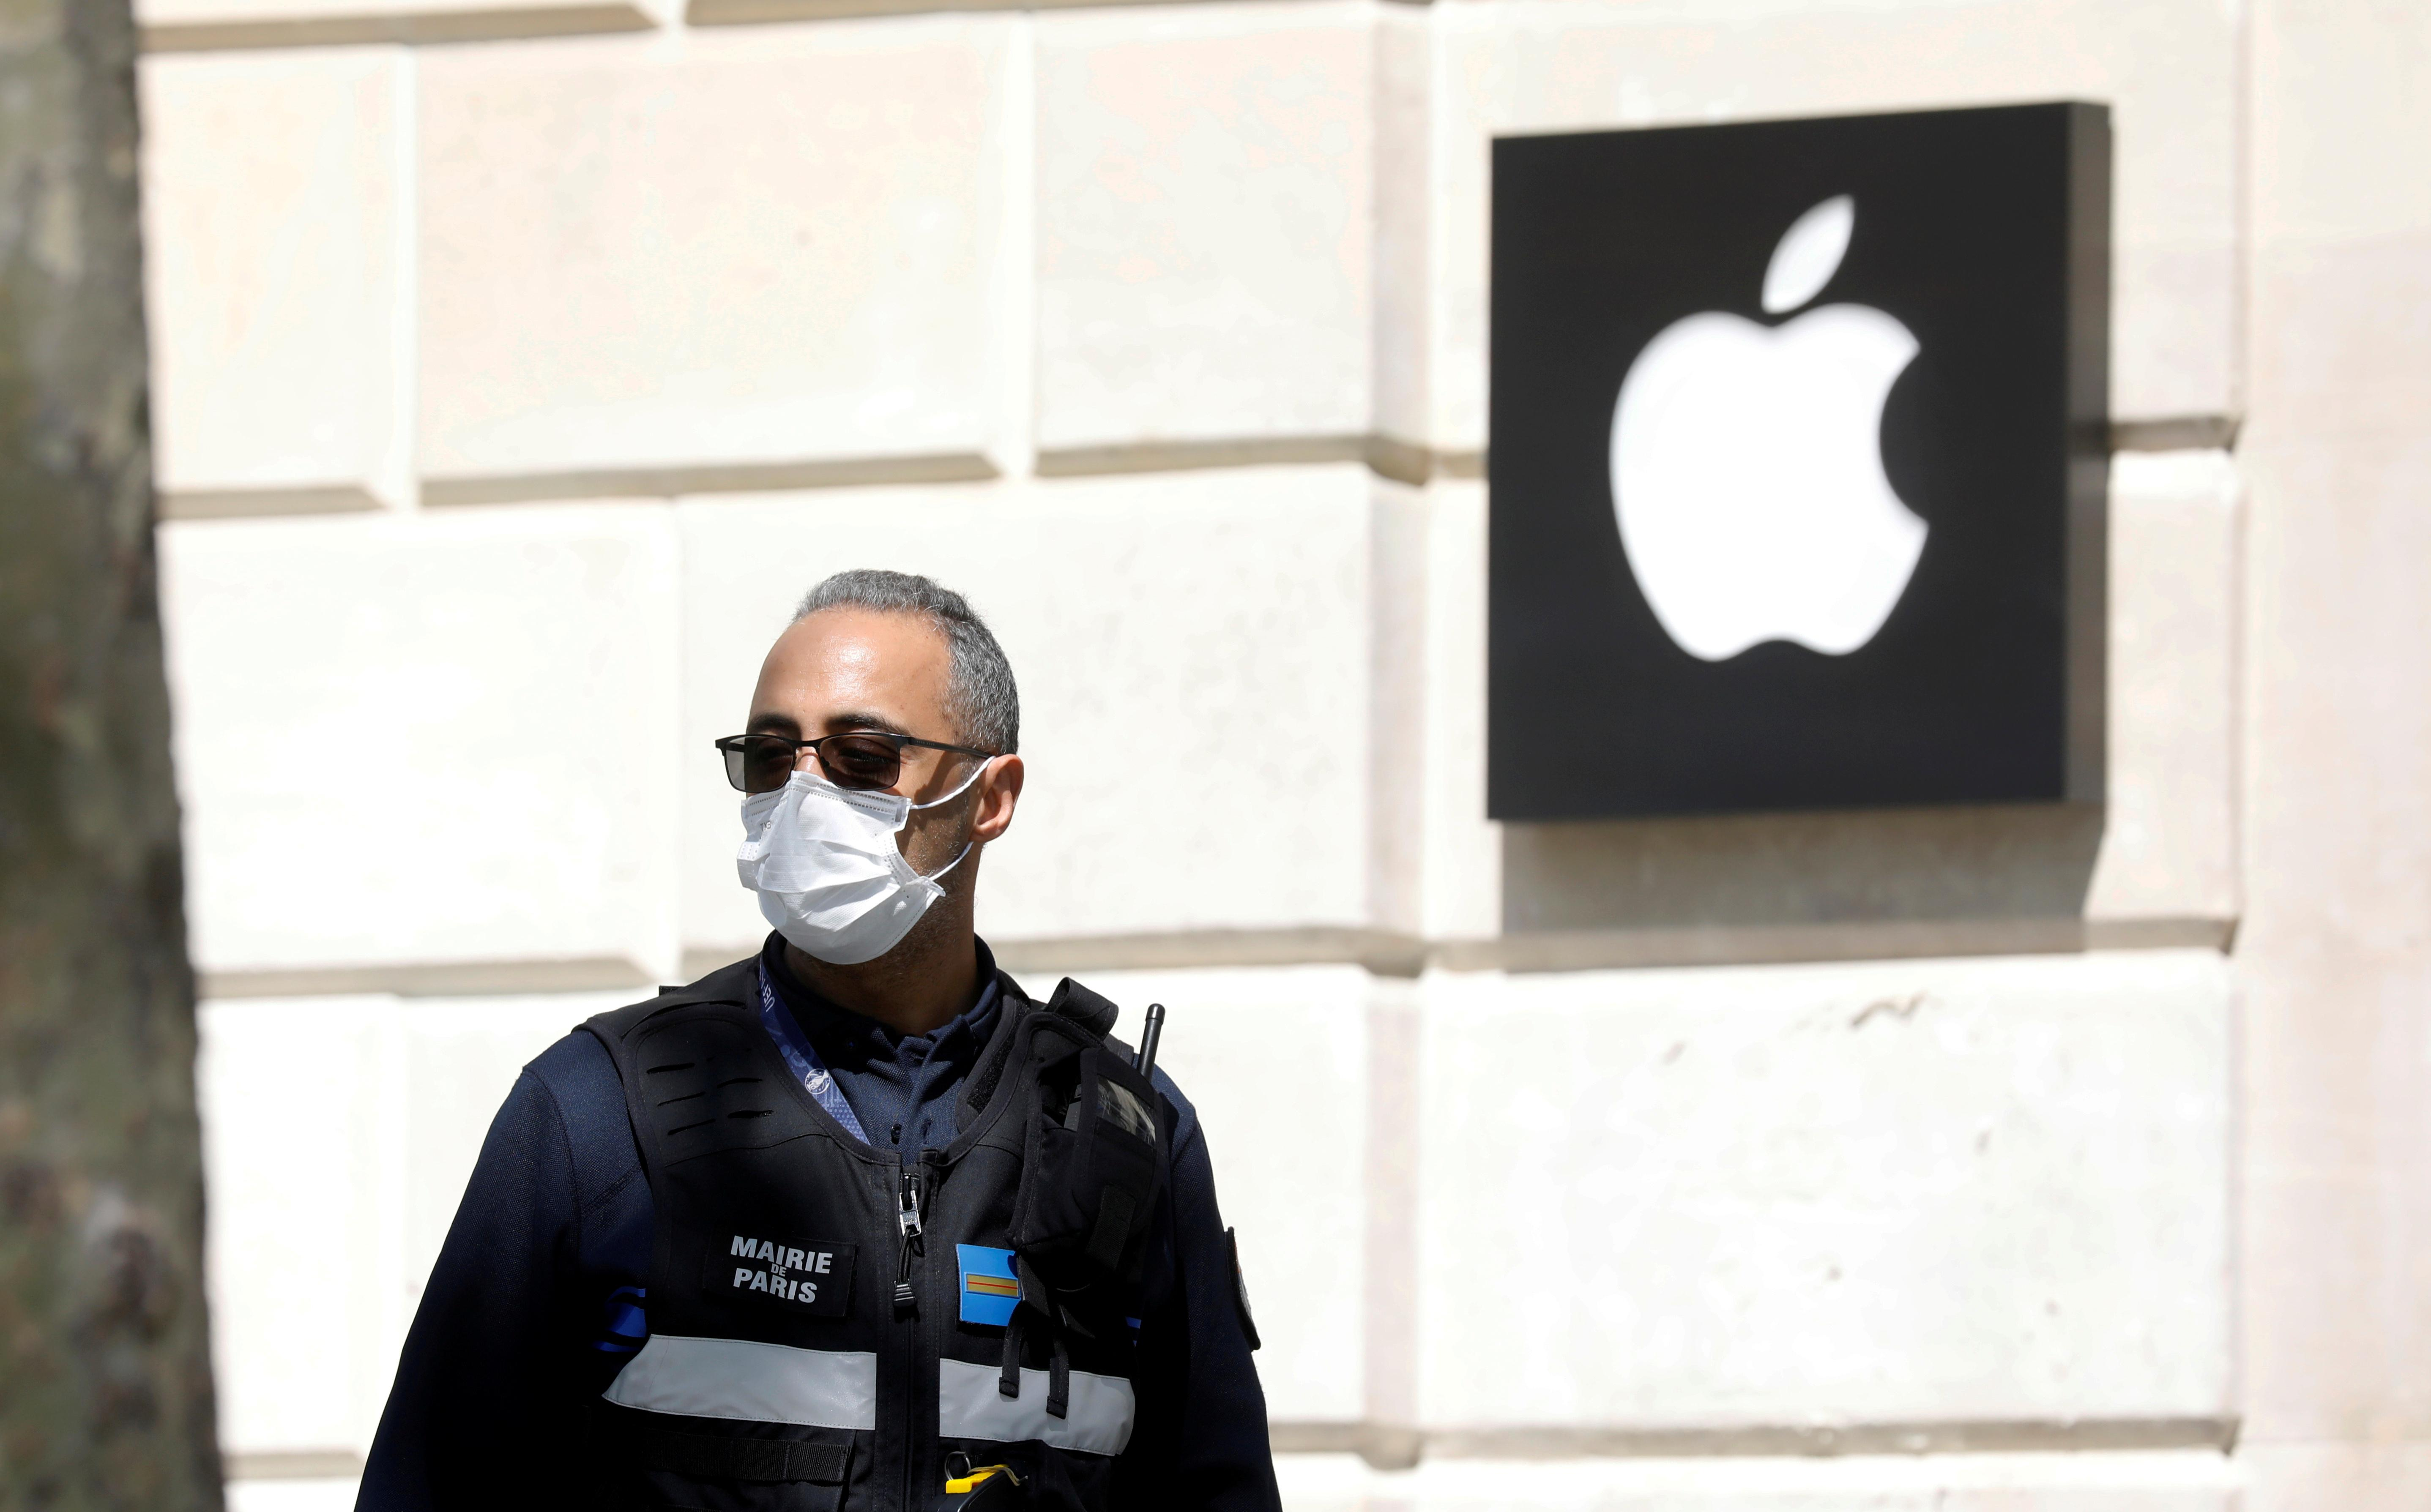 A municipal police officer wearing a protective face mask walks past the Apple store on the Champs-Elysees avenue in Paris in France, April 16, 2020. Photo: Reuters